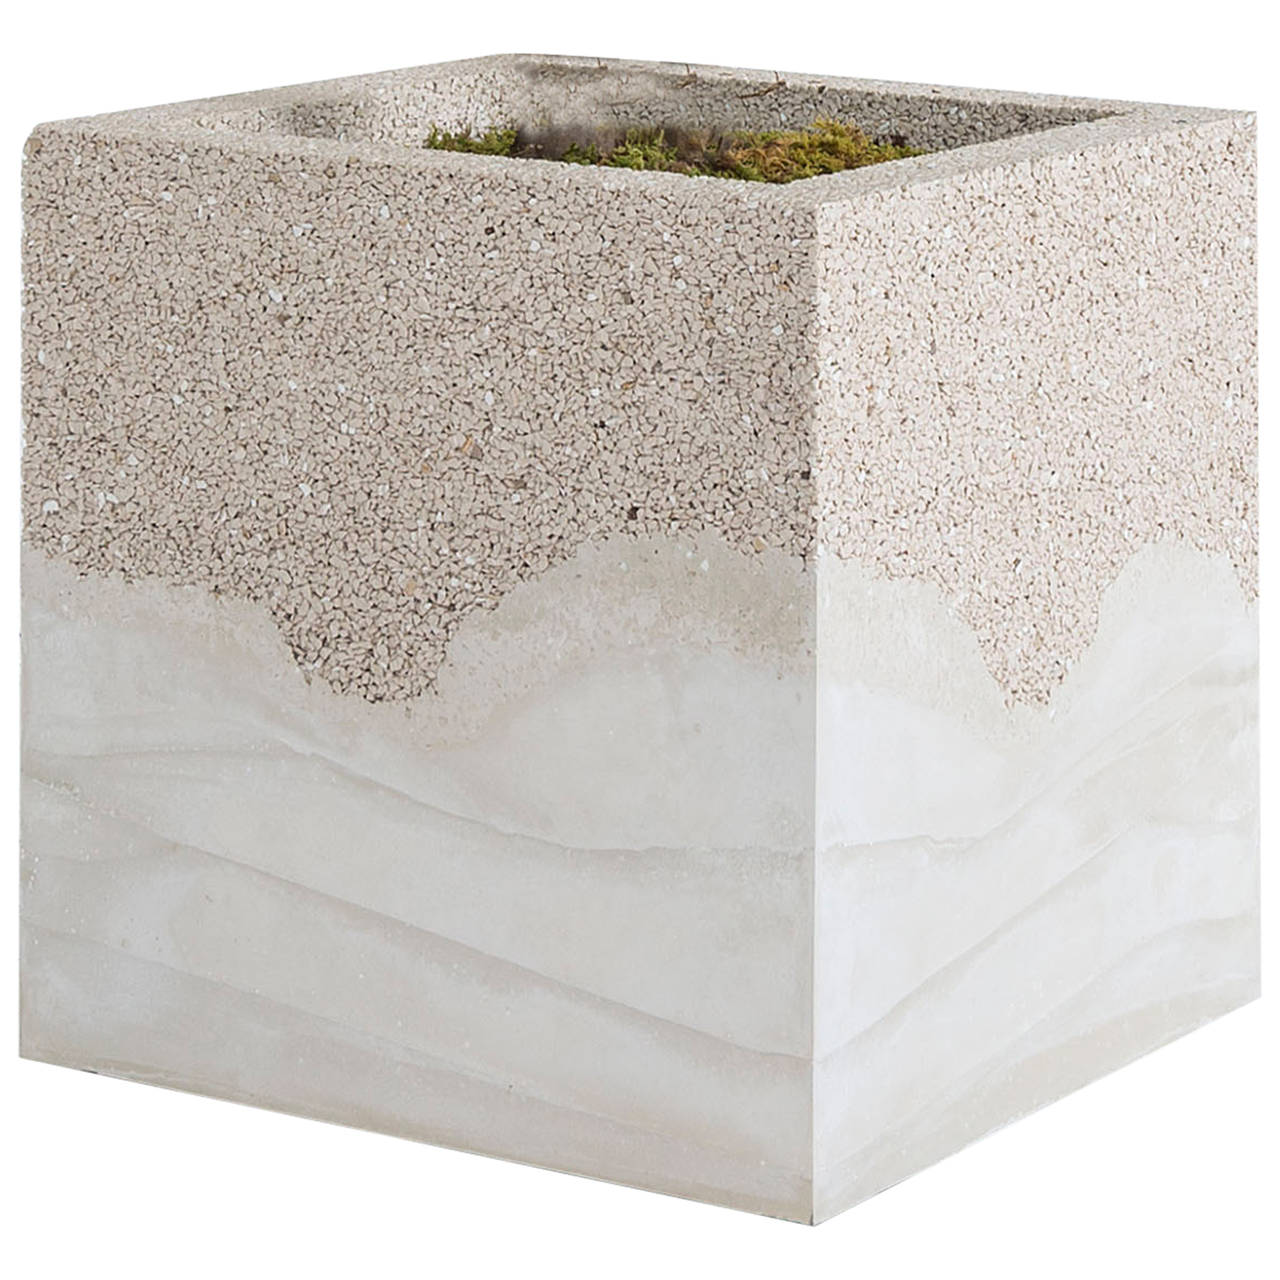 Crushed Porcelain and Cement Planter by Fernando Mastrangelo 1